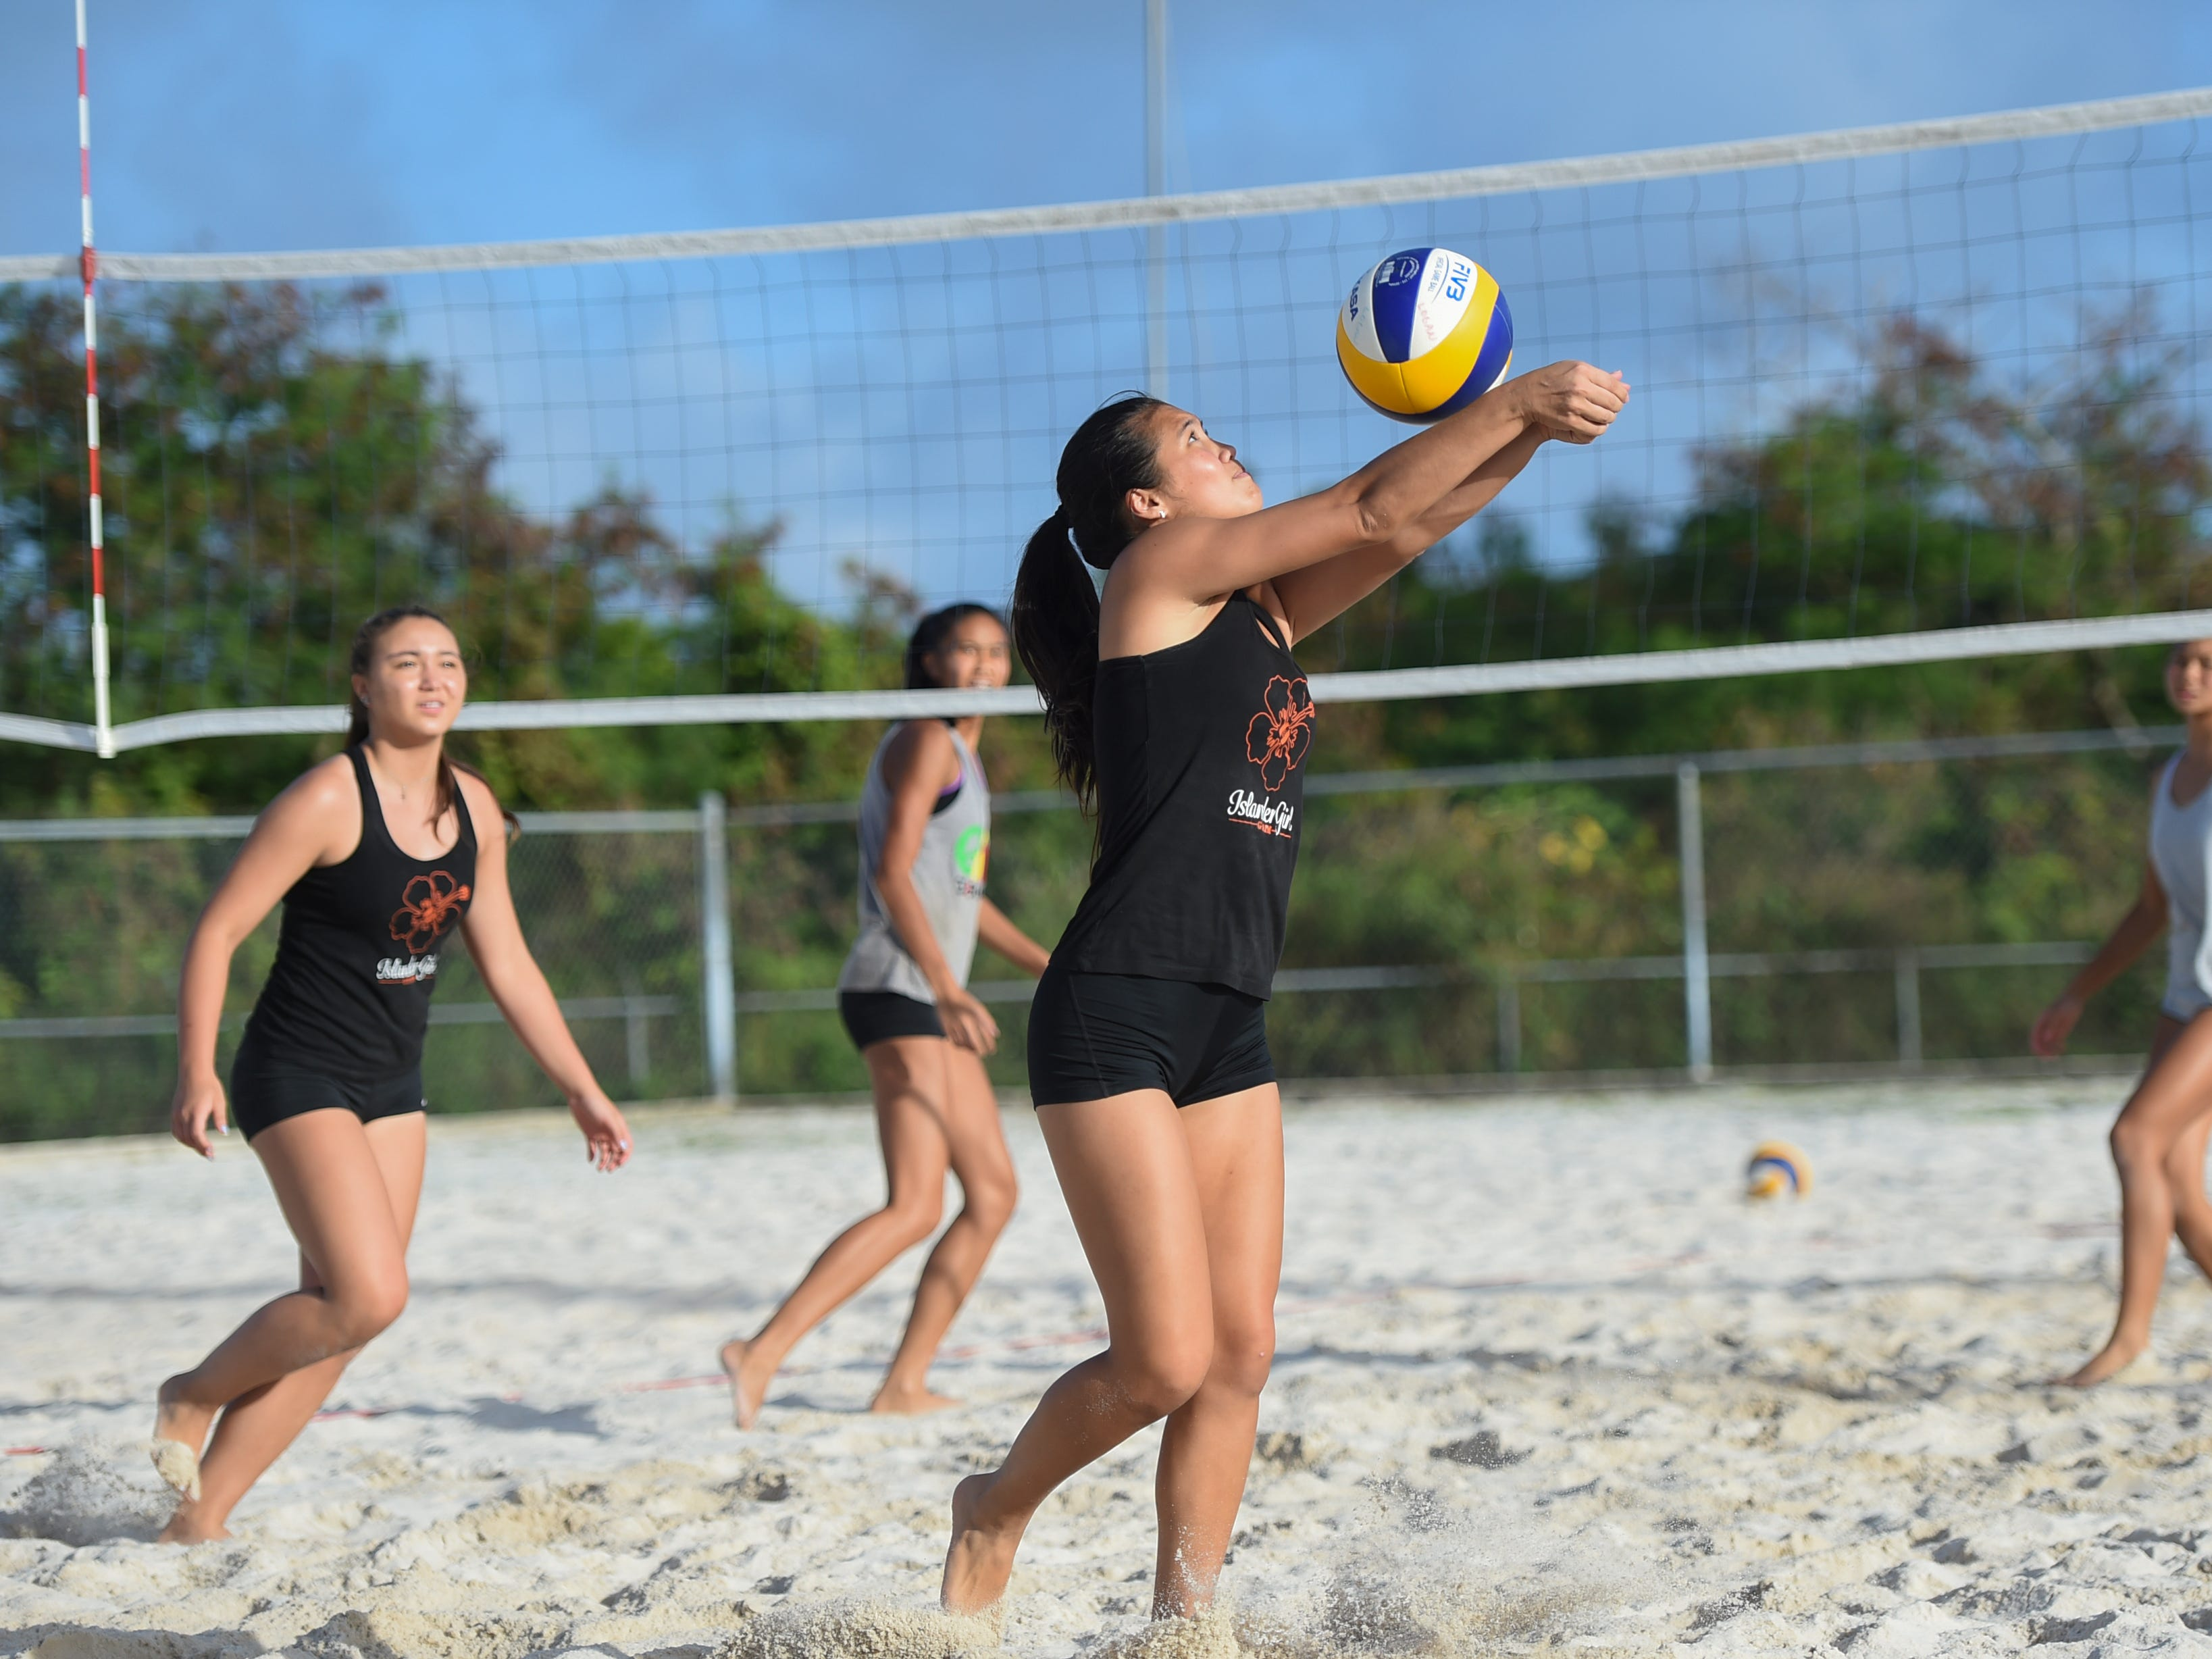 St. John's White's Hallie Wigsten bumps the ball during the IIAAG Beach Volleyball championship game at the Guam Football Association National Training Center in Dededo, March 12, 2019.